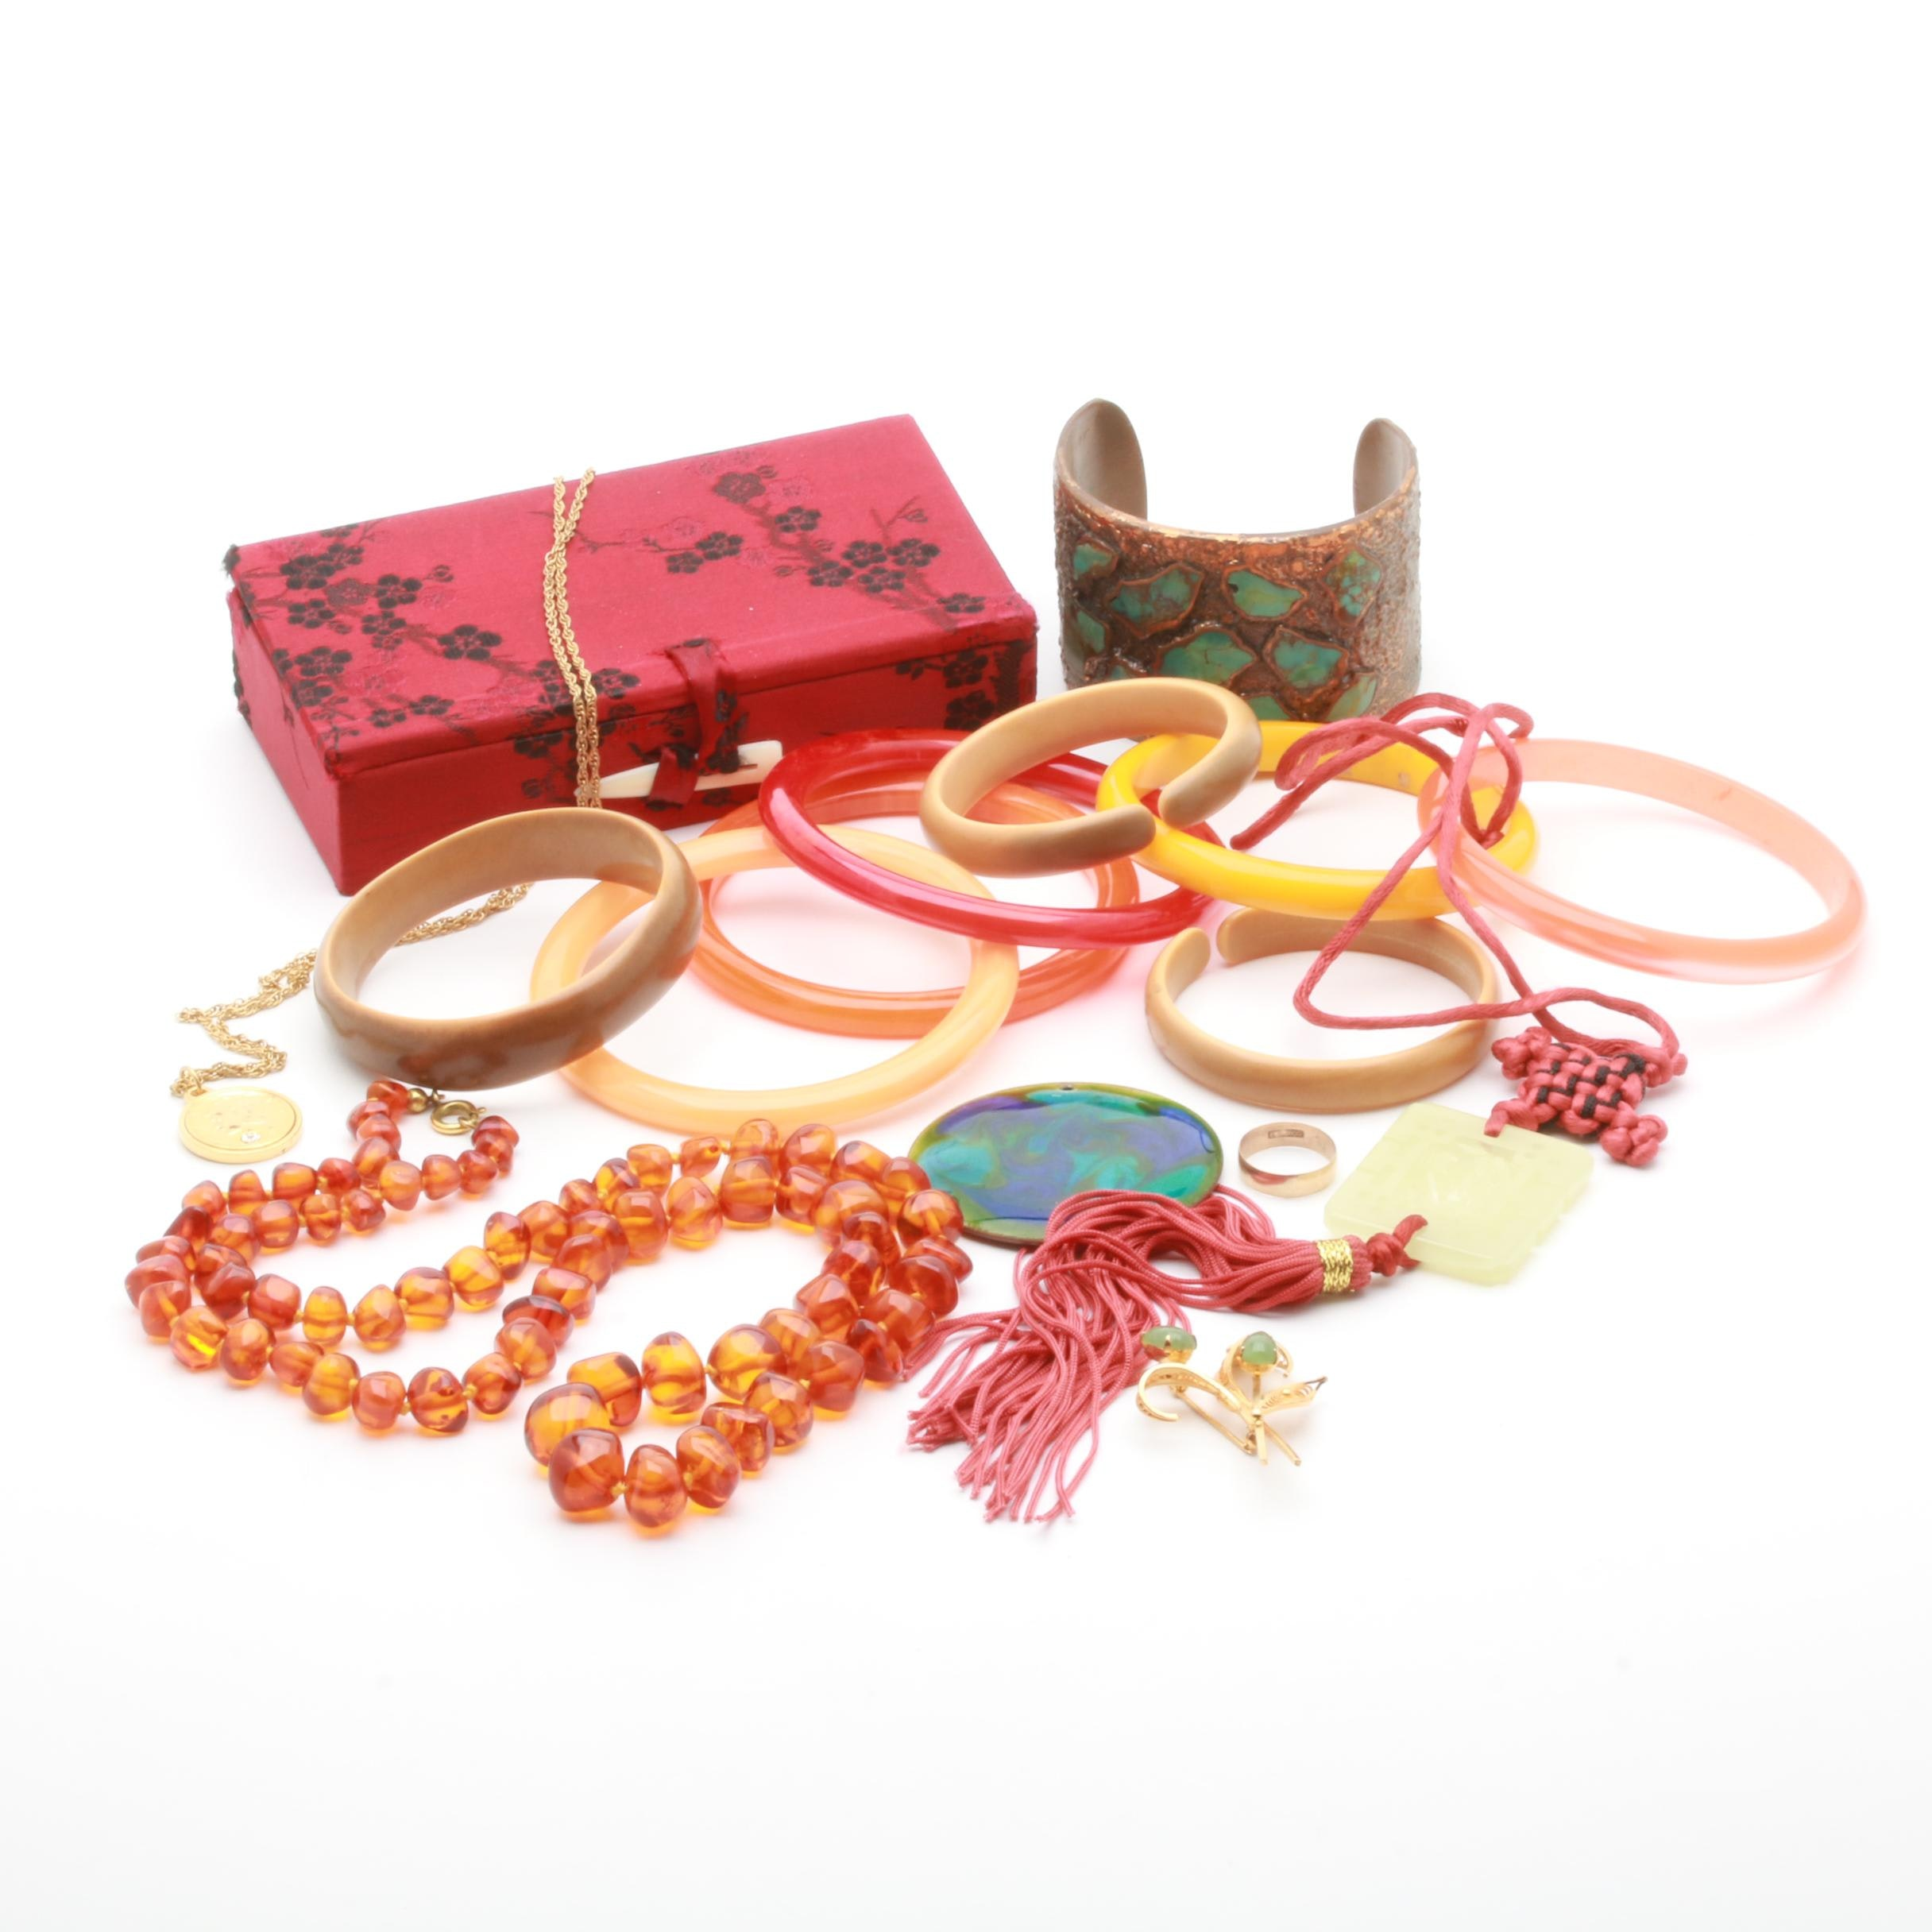 Vintage Jewelry Assortment Featuring Nephrite, Amber and Bowenite